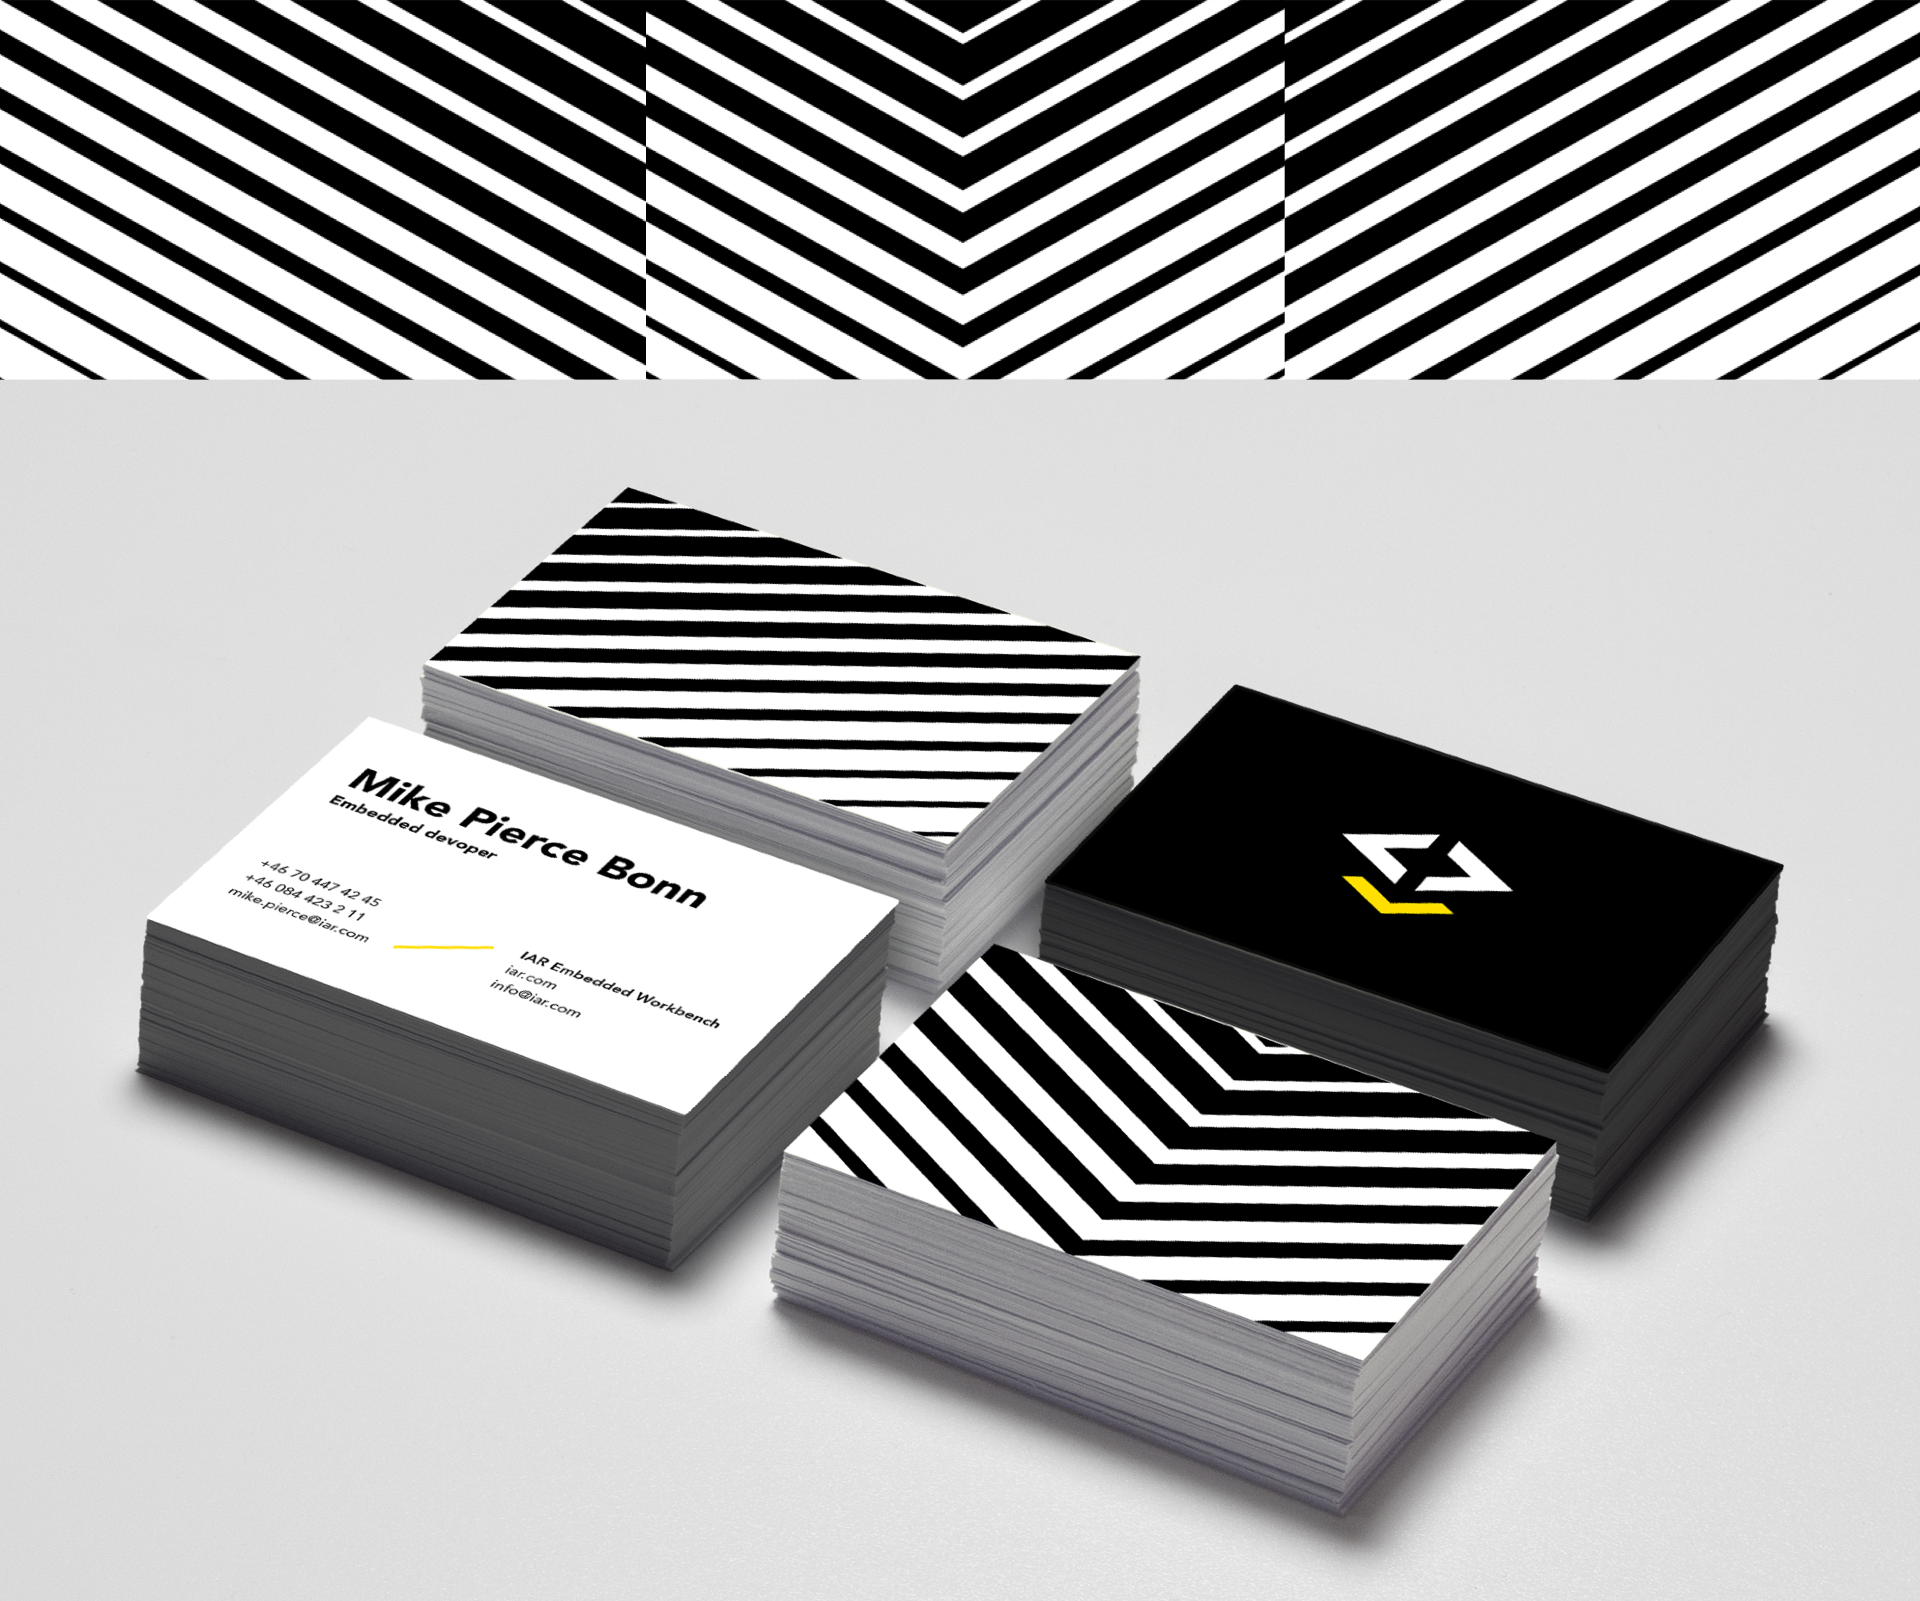 Brand design for IAR Embedded Workbench. Material from the process. Illustration showing the logotype in white and yellow on various Business cards.